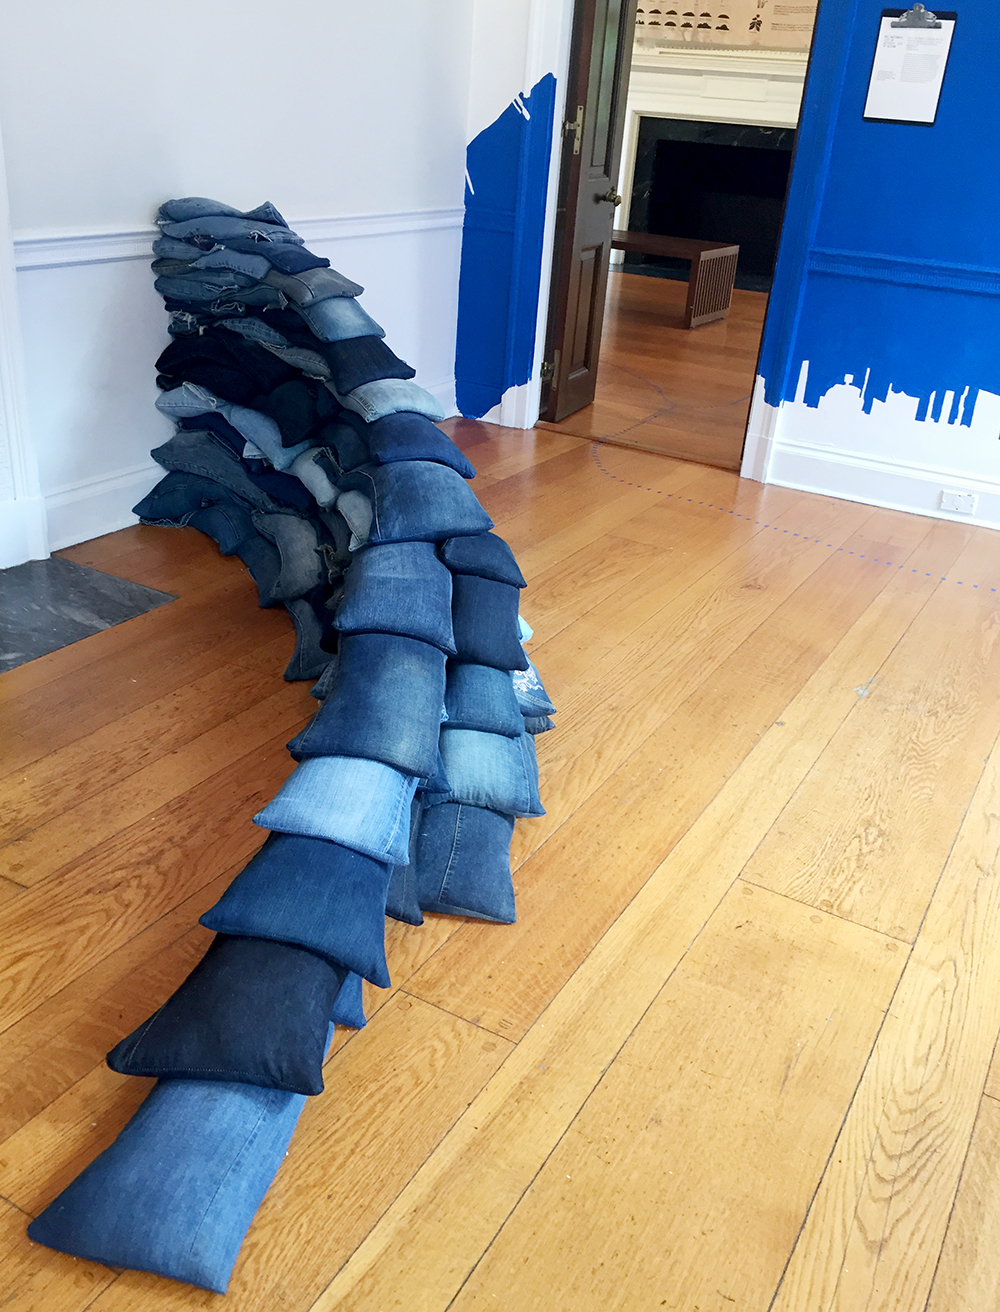 Denim sandbags by Jean Shin at Wave Hill, Bronx, N.Y. | Photo credit: Rose Spaziani